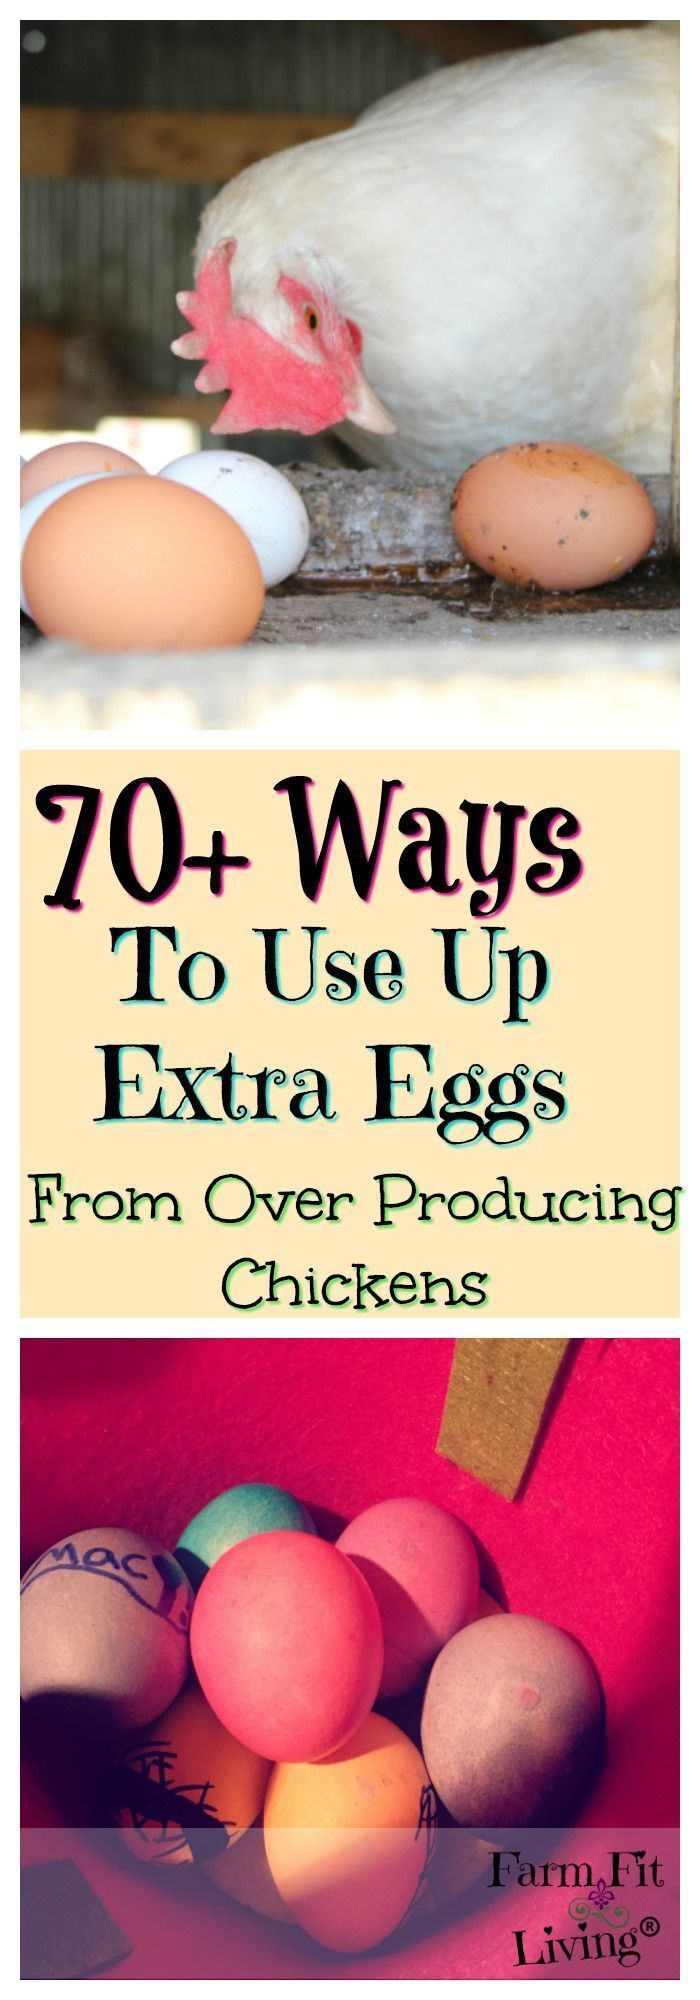 70 Ways To Use Up Extra Eggs From Your Over Producing